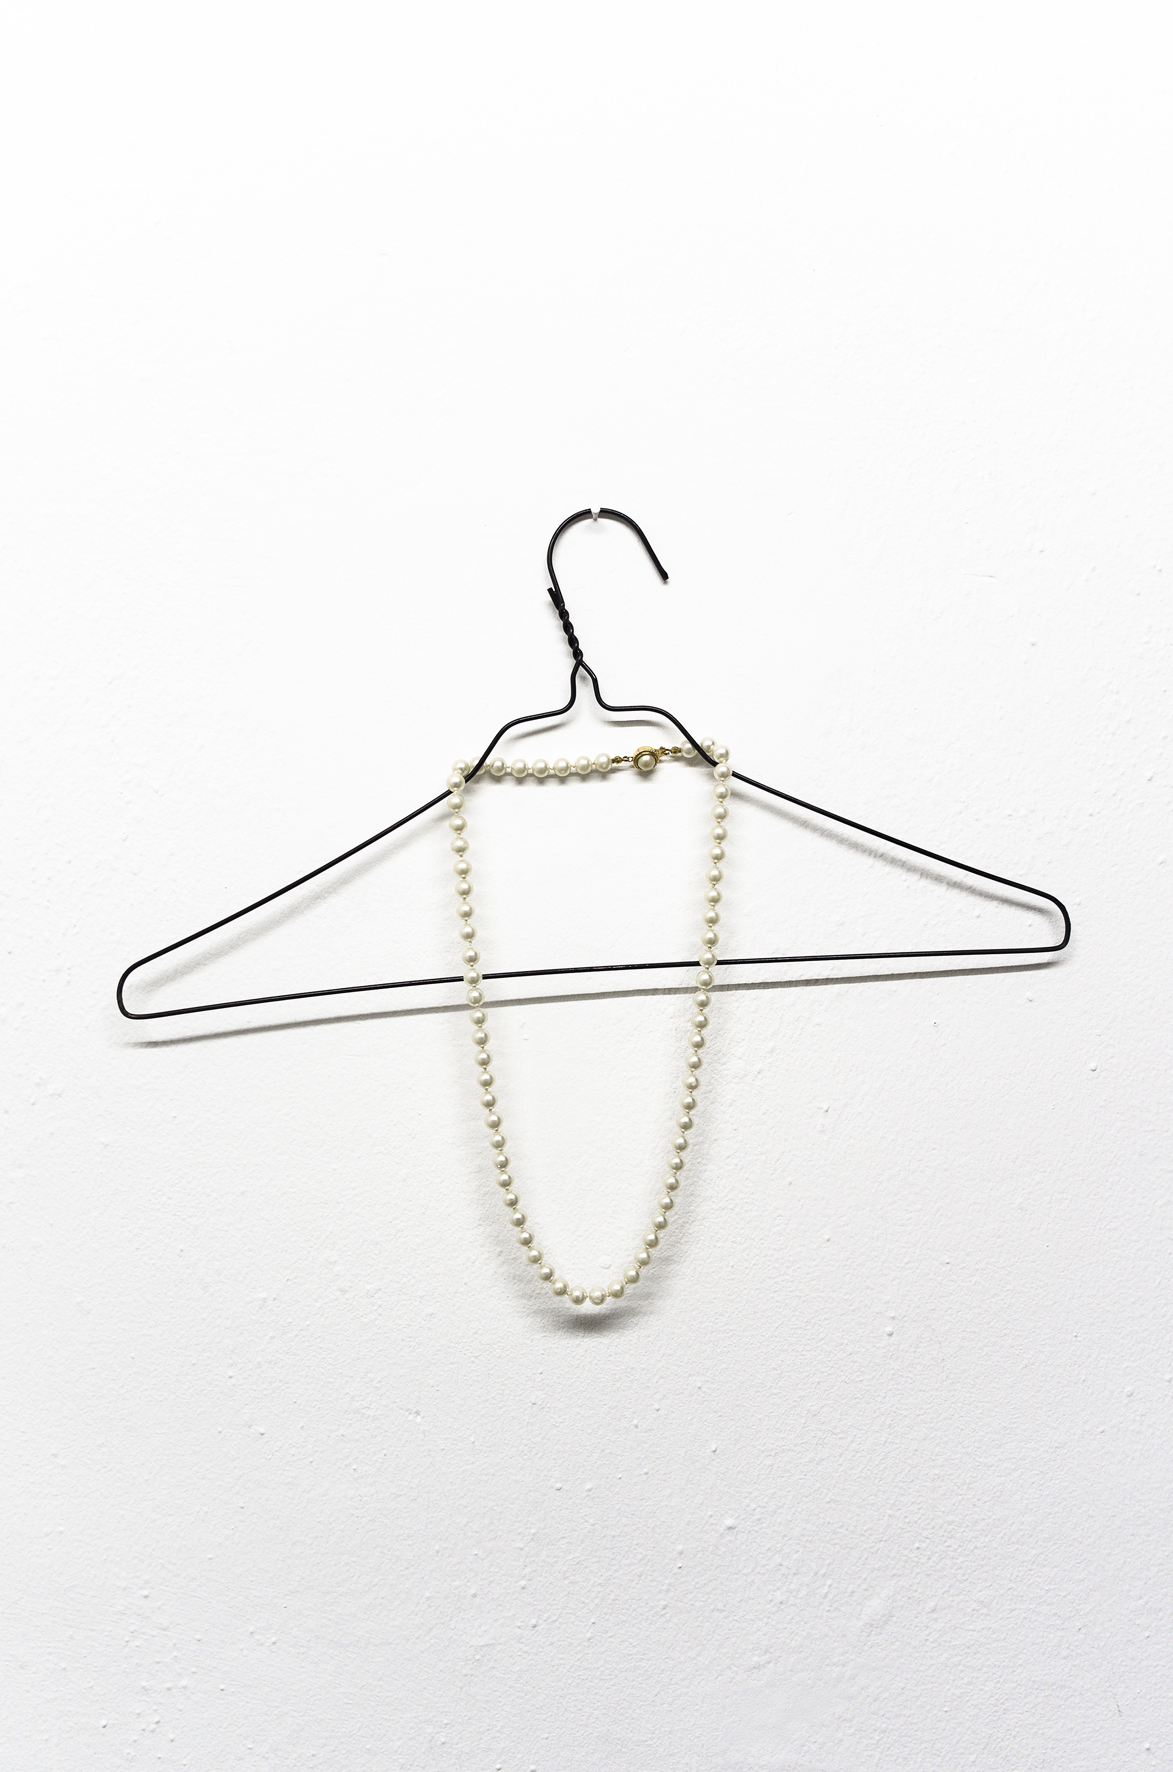 Las horas, 2003, Hanger and necklace, 40 x 35cm